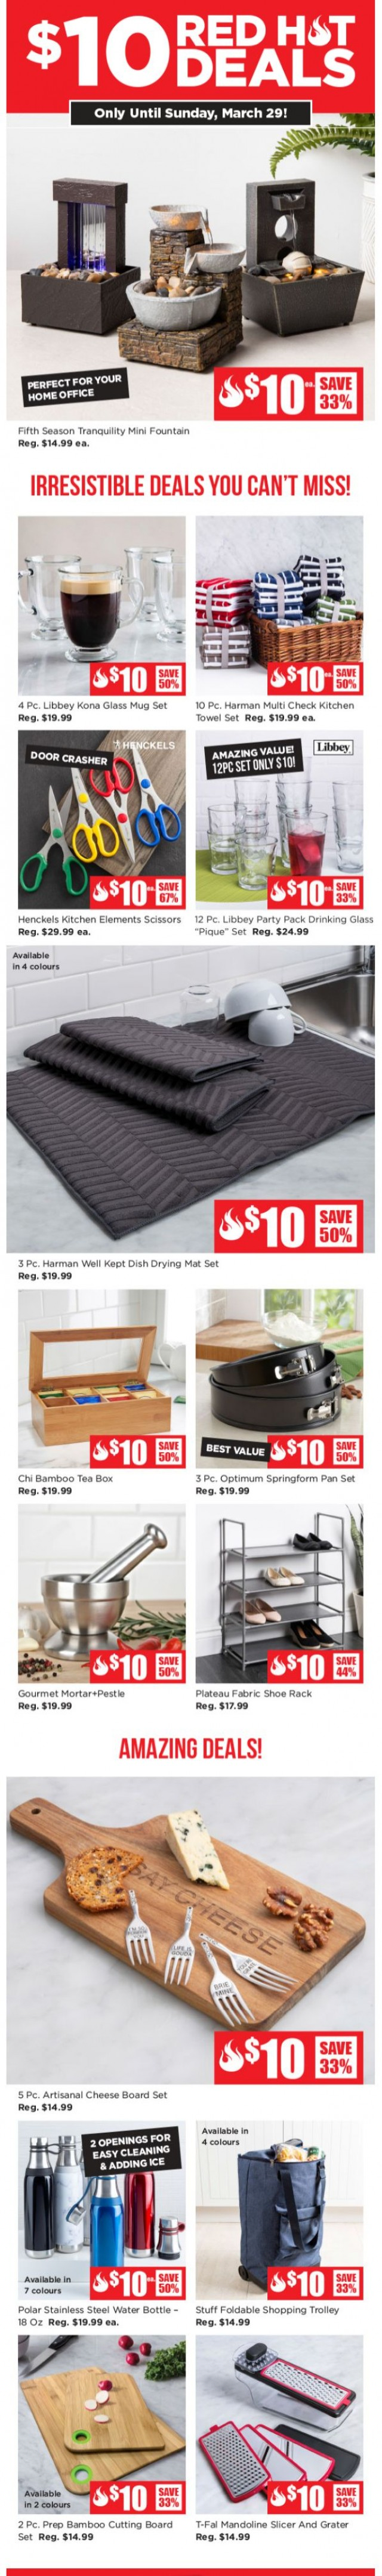 Coupon for: Kitchen Stuff Plus - $10 Red Hot. Deals Are Here!